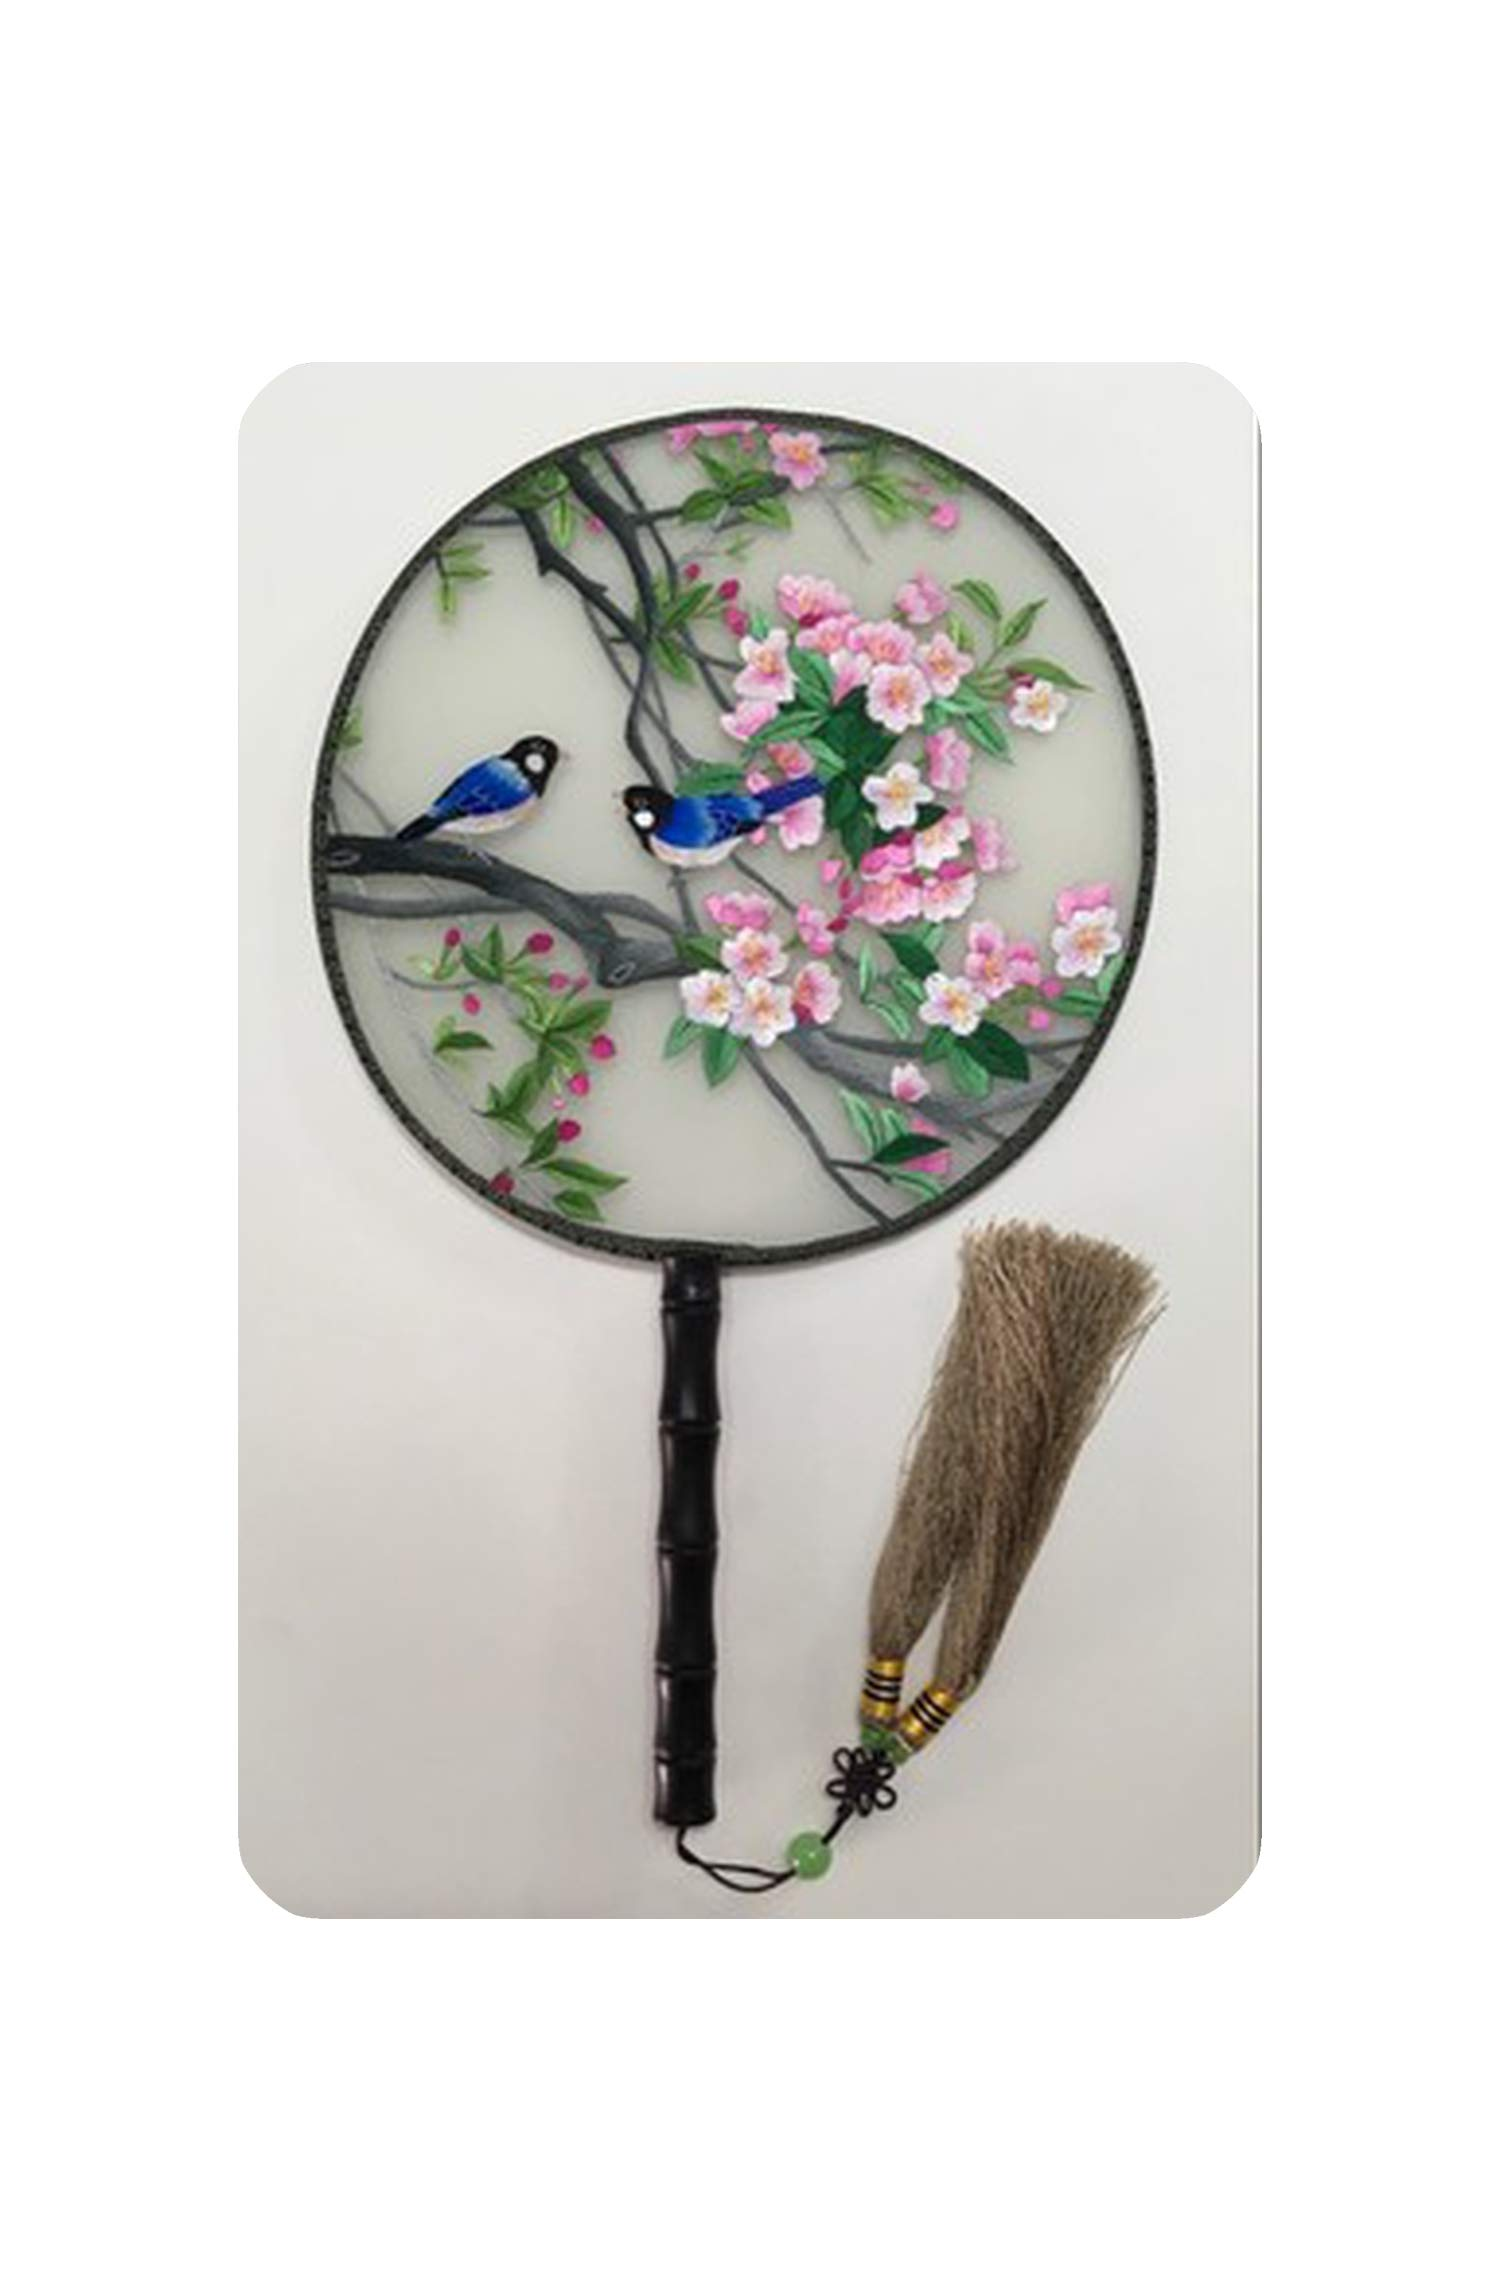 Handmade 100% Mulberry Silk Finished Suzhou Embroidery Round Fan Double Sided Embroidery Animals Birds and Flowers Fan 7,NO.7 by koweis